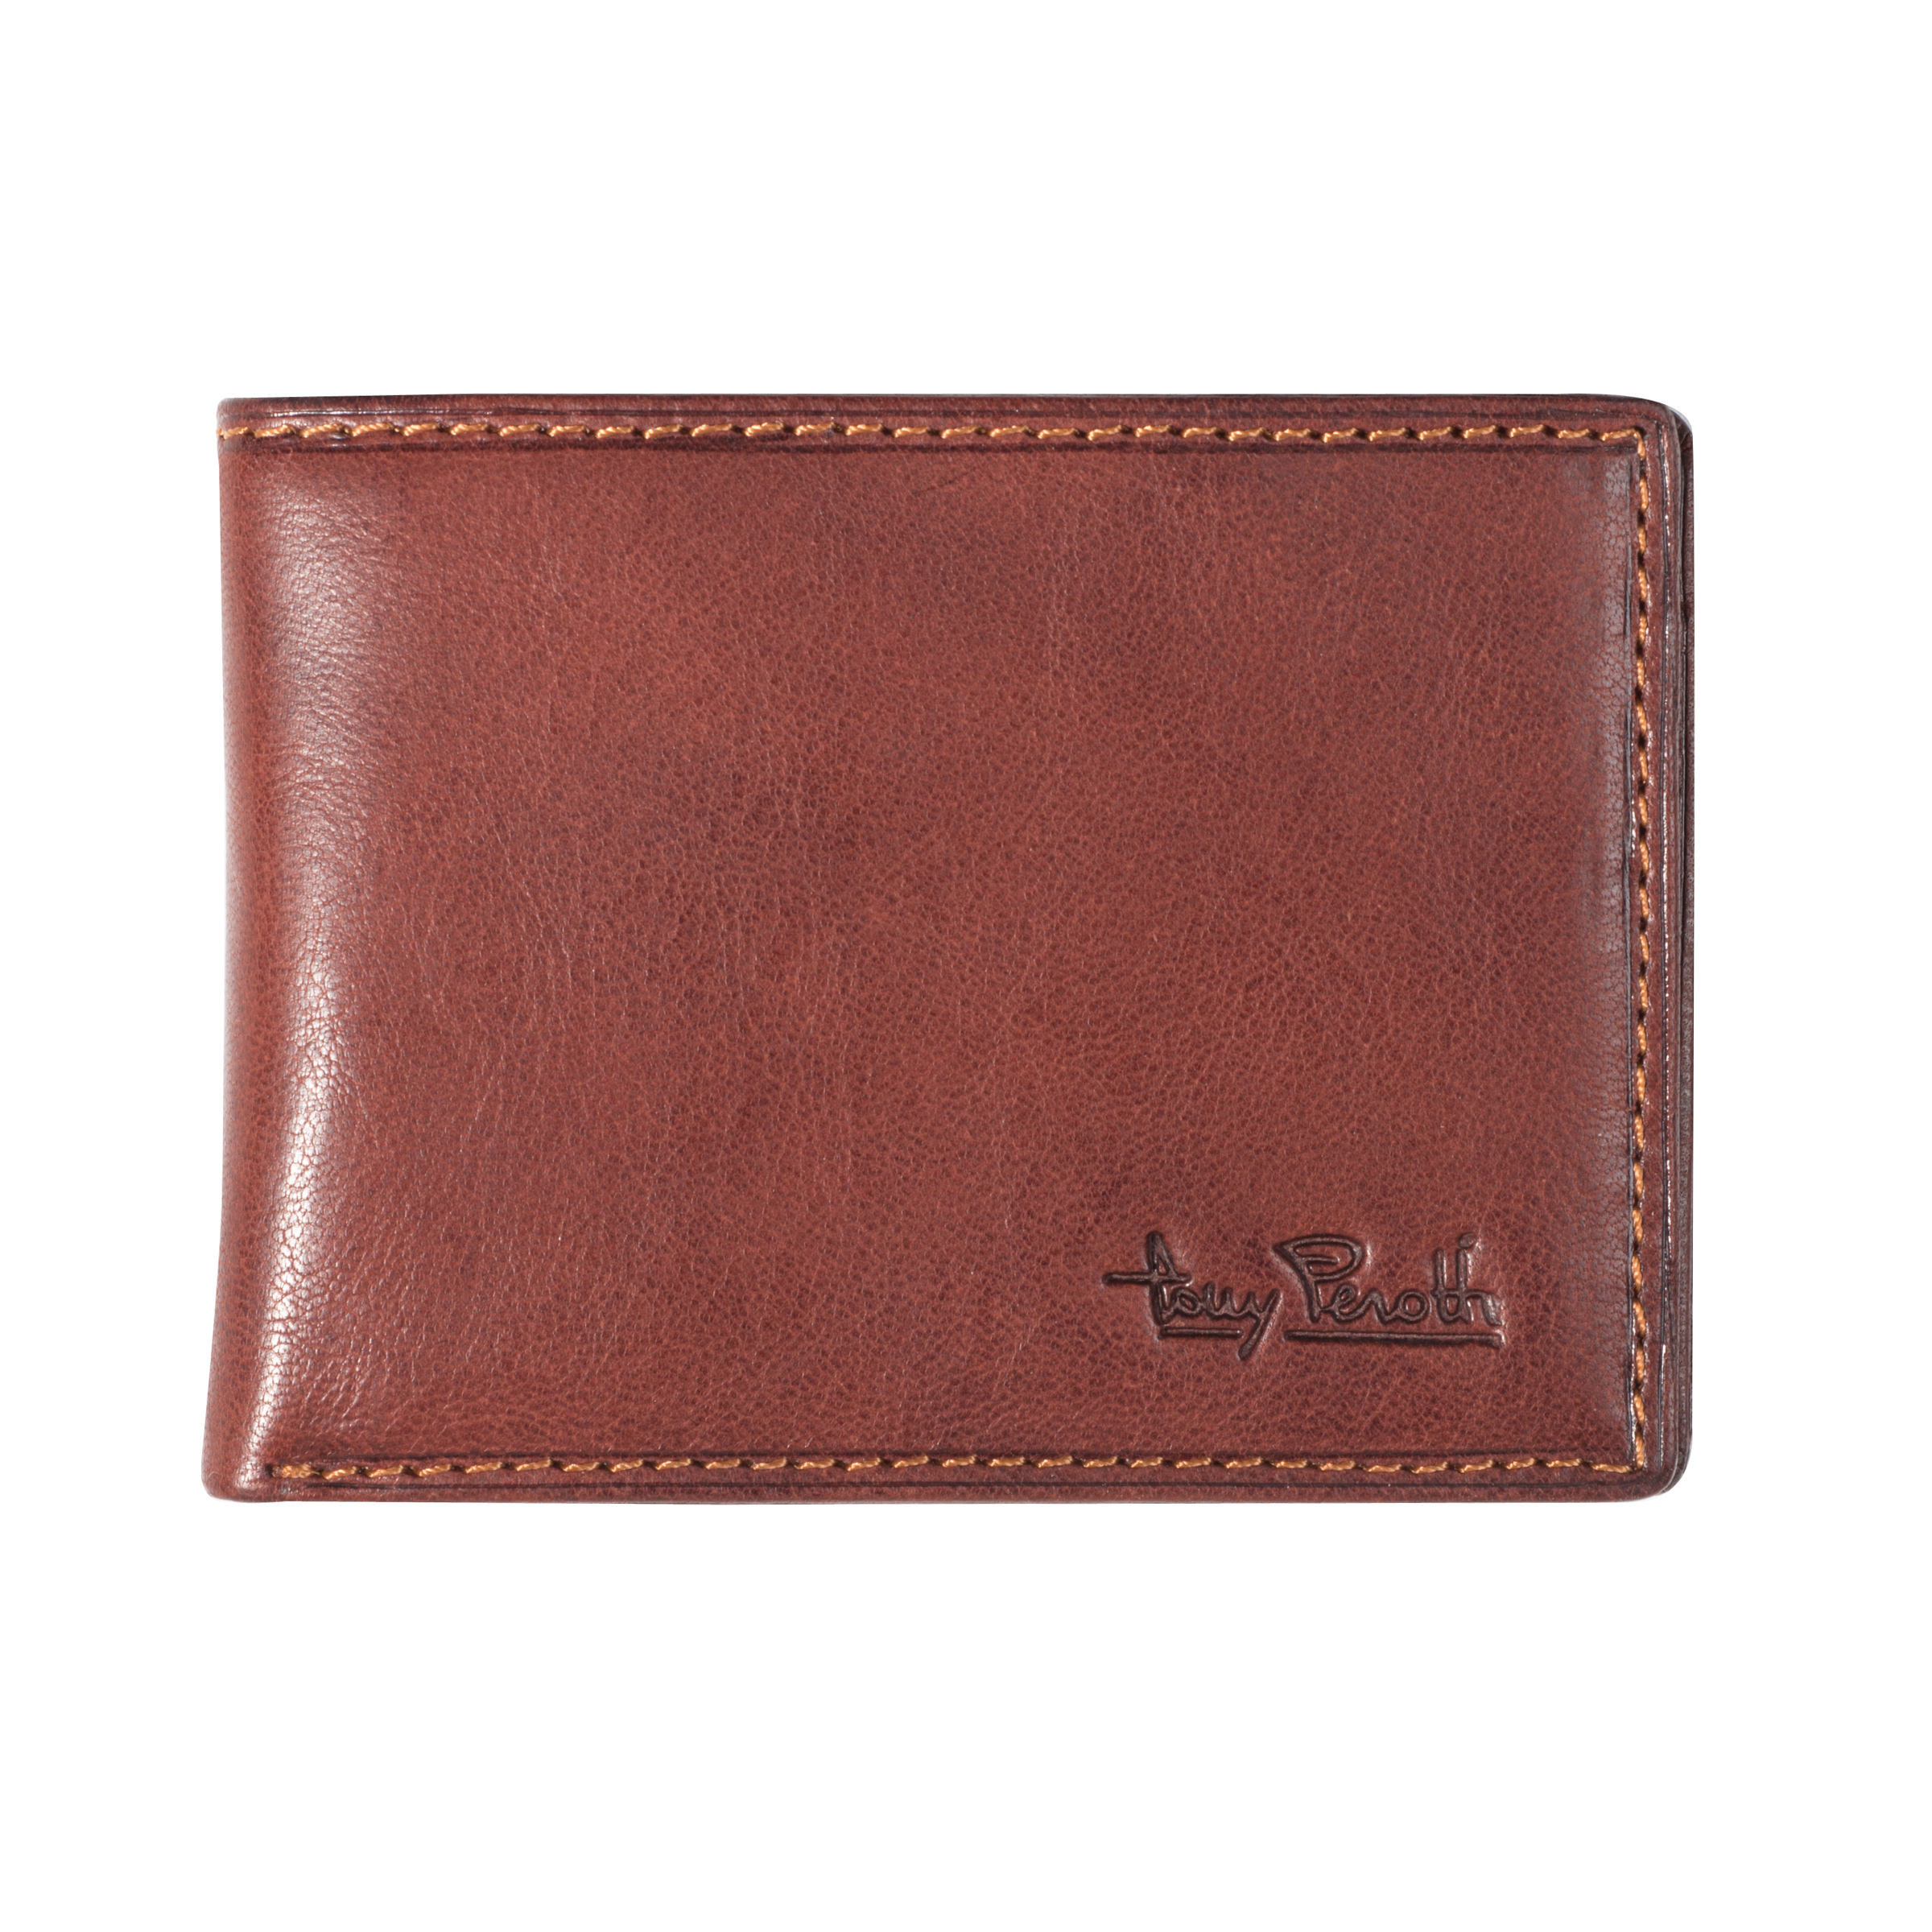 Tony Perotti American Billfold small Brown